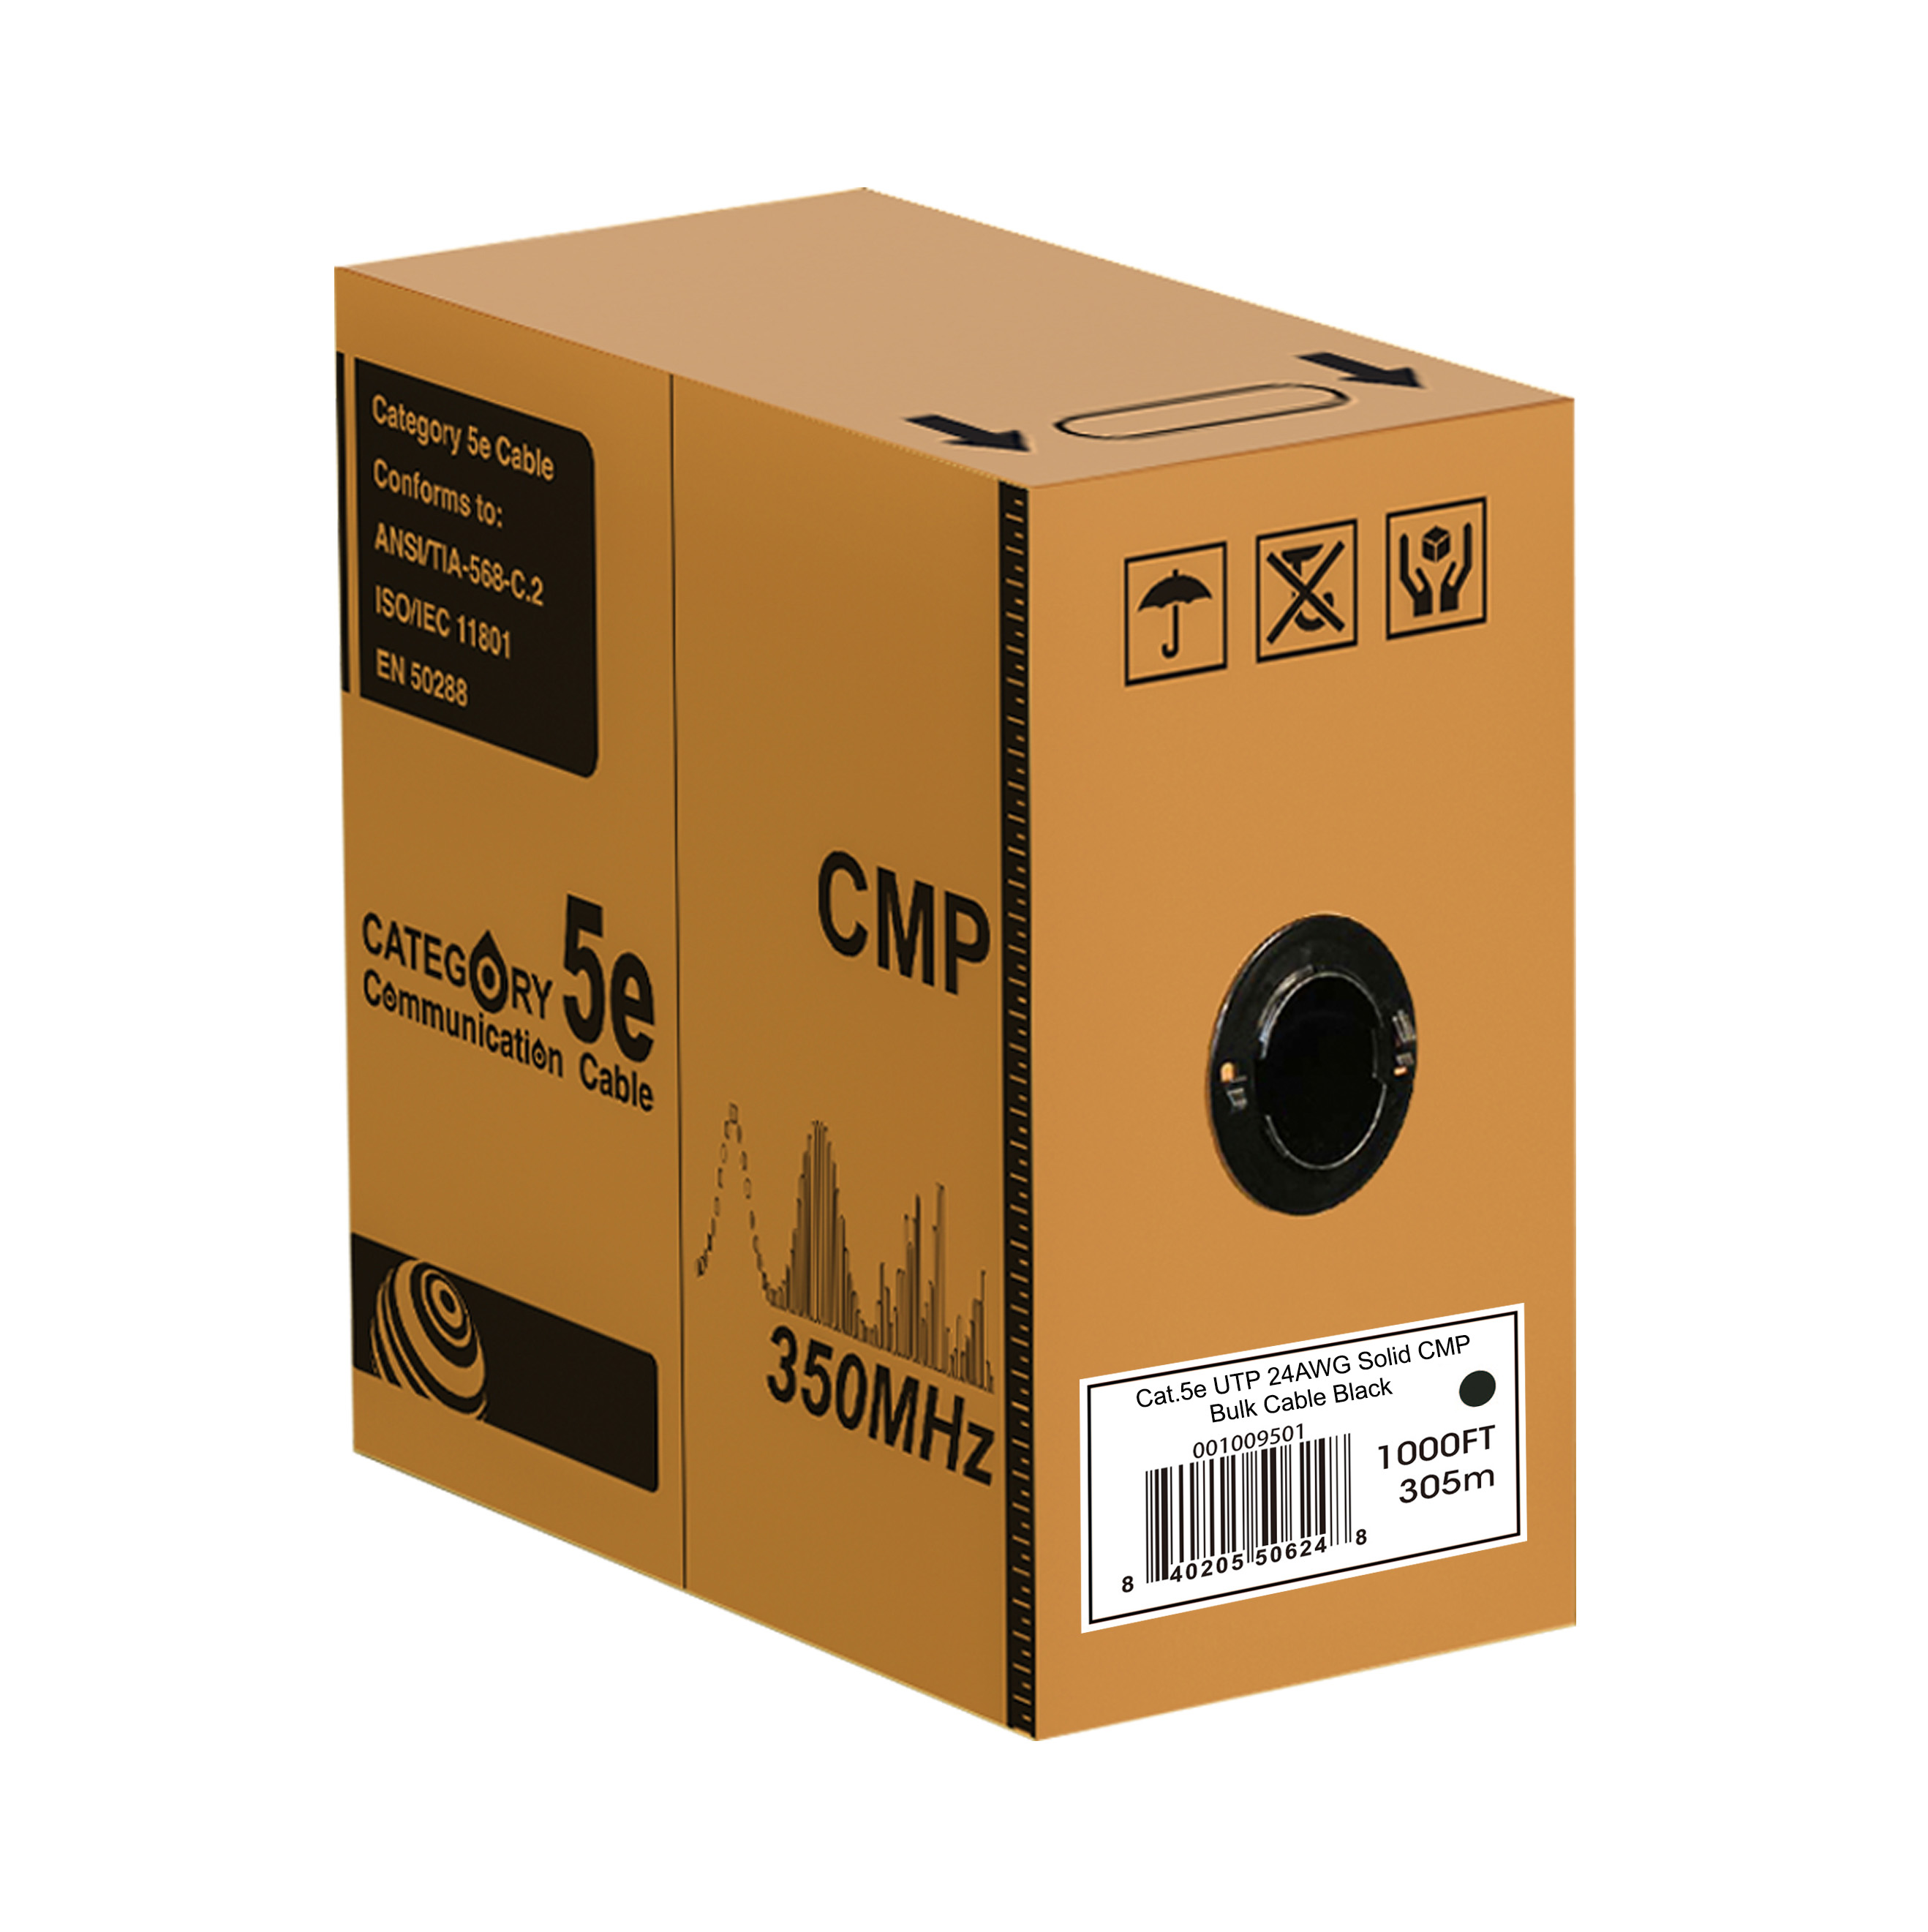 Cat.5e UTP 24AWG Solid CMP bulk cable(black), 1000ft REELEX